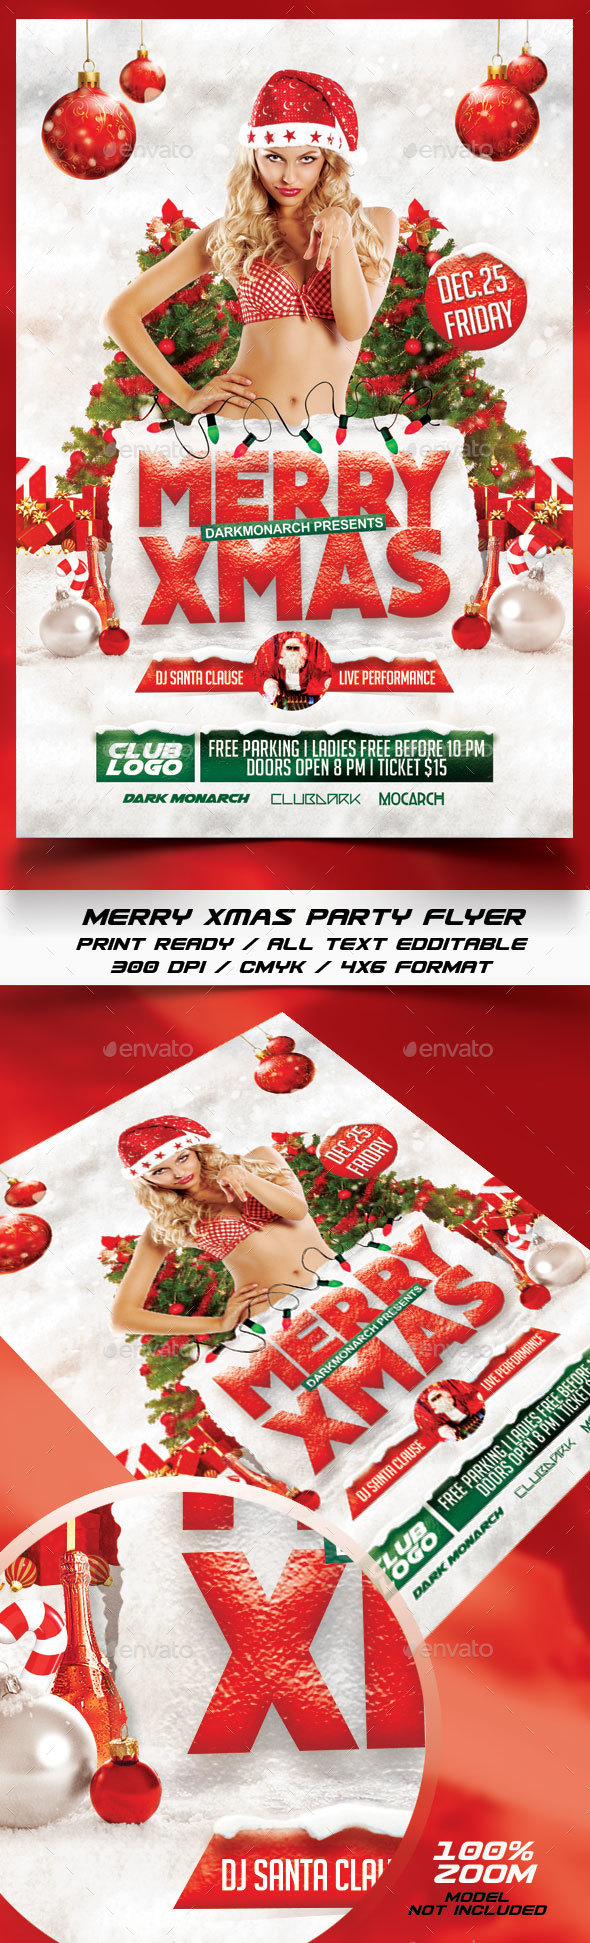 Merry Xmas Party Flyer - Holidays Events